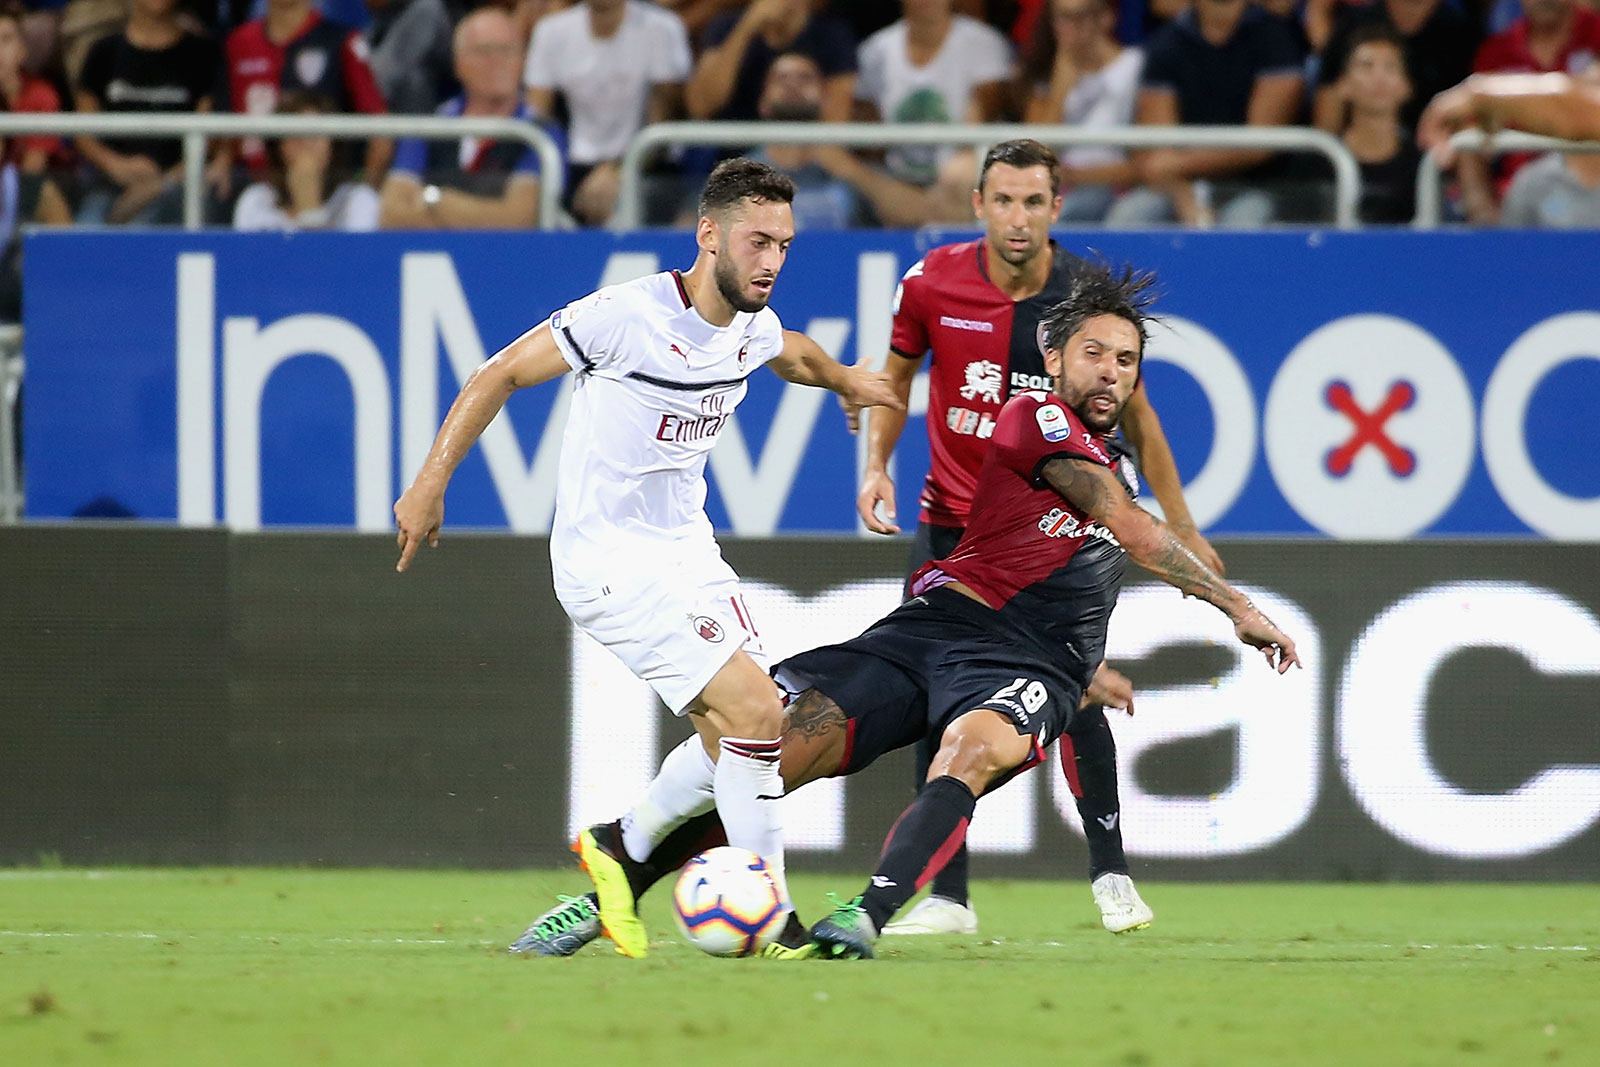 Hakan Çalhanoğlu and Lucas Castro during Cagliari-Milan at Sardegna Arena on September 16, 2018. (Photo by Enrico Locci/Getty Images)